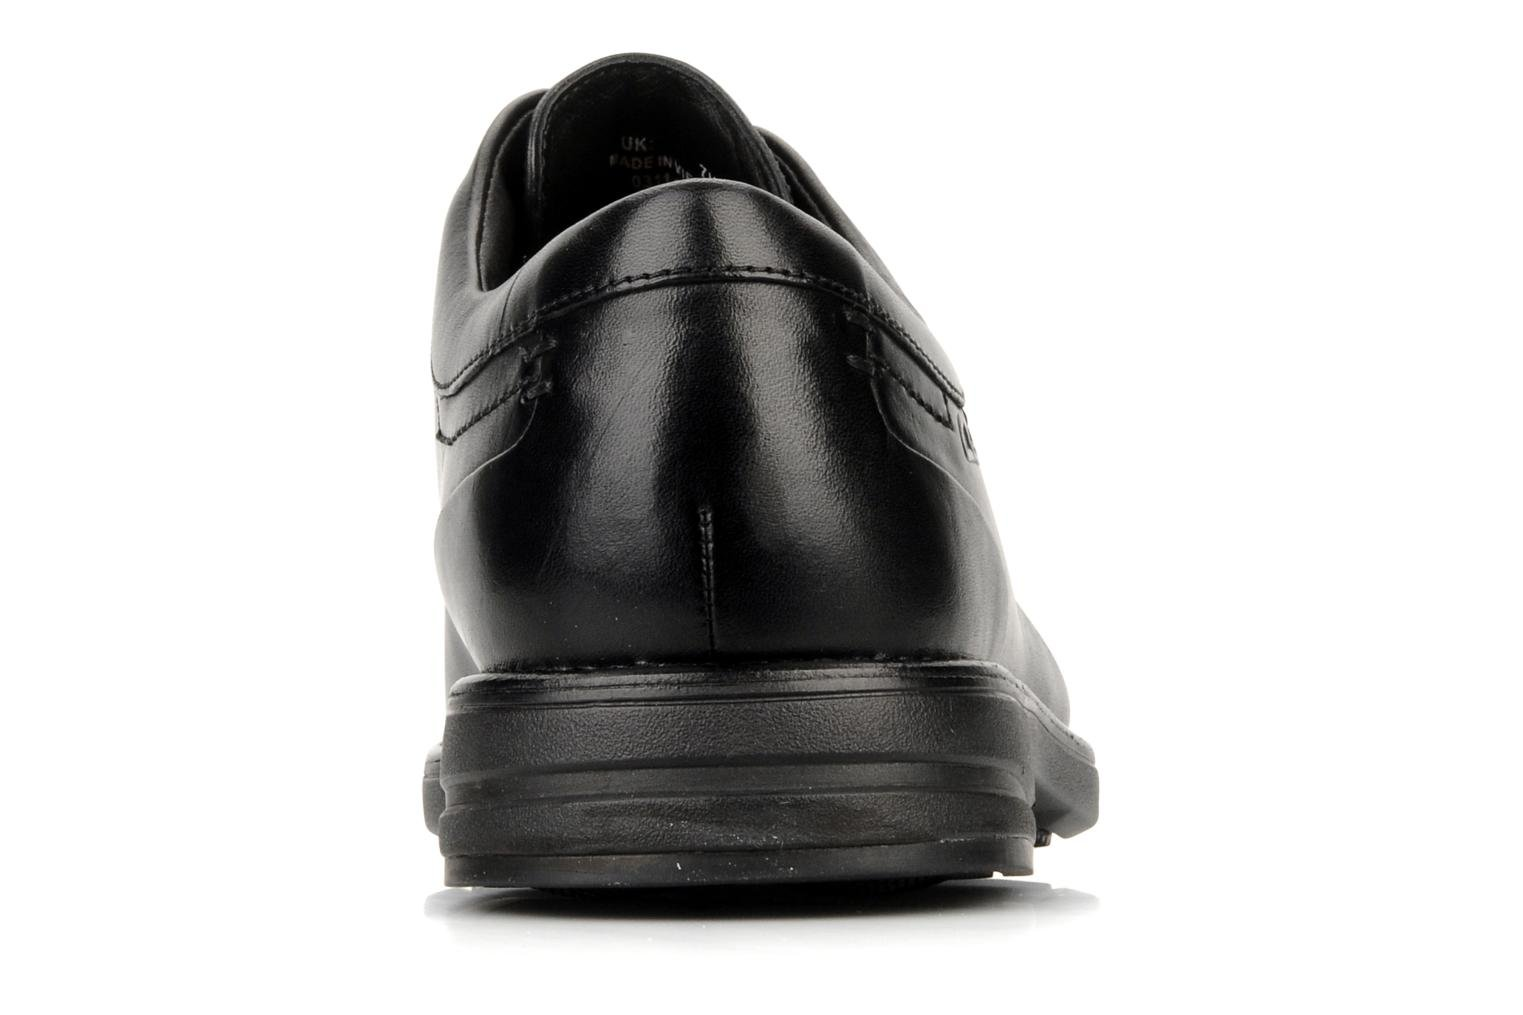 Carter air Black leather